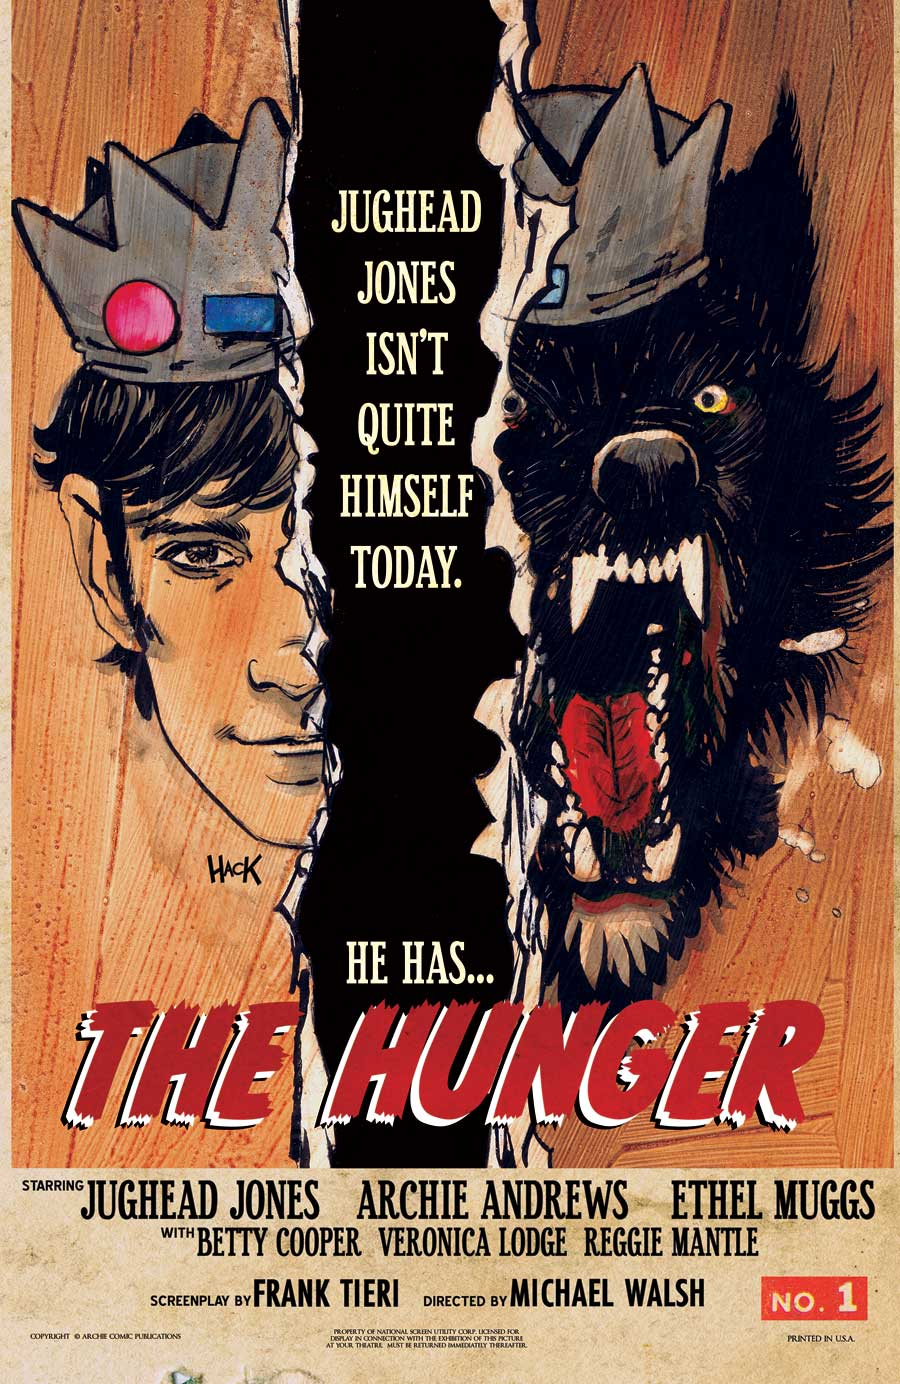 JughHungerOneShotHack - Jughead: The Hunger One Shot Comic Arriving in Late March